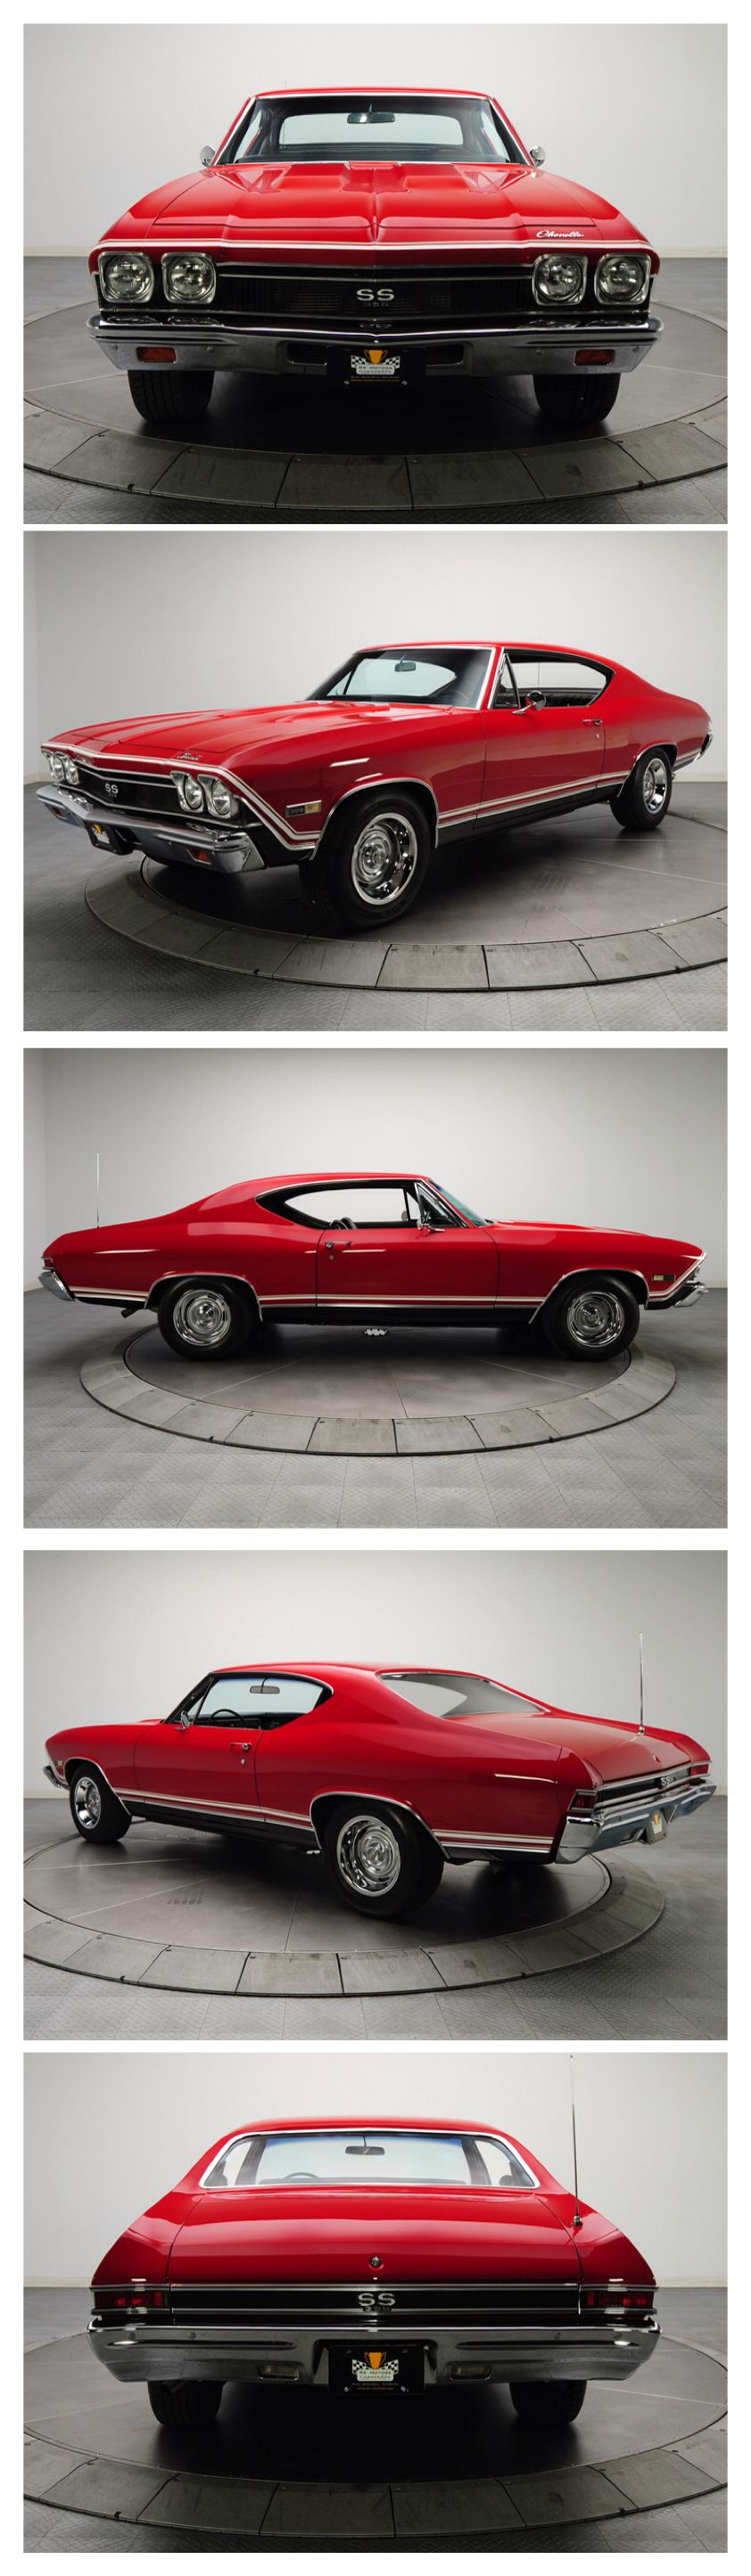 1968 Chevy Chevelle SS…Re-pin Brought to you by agents at #HouseofInsurance in…